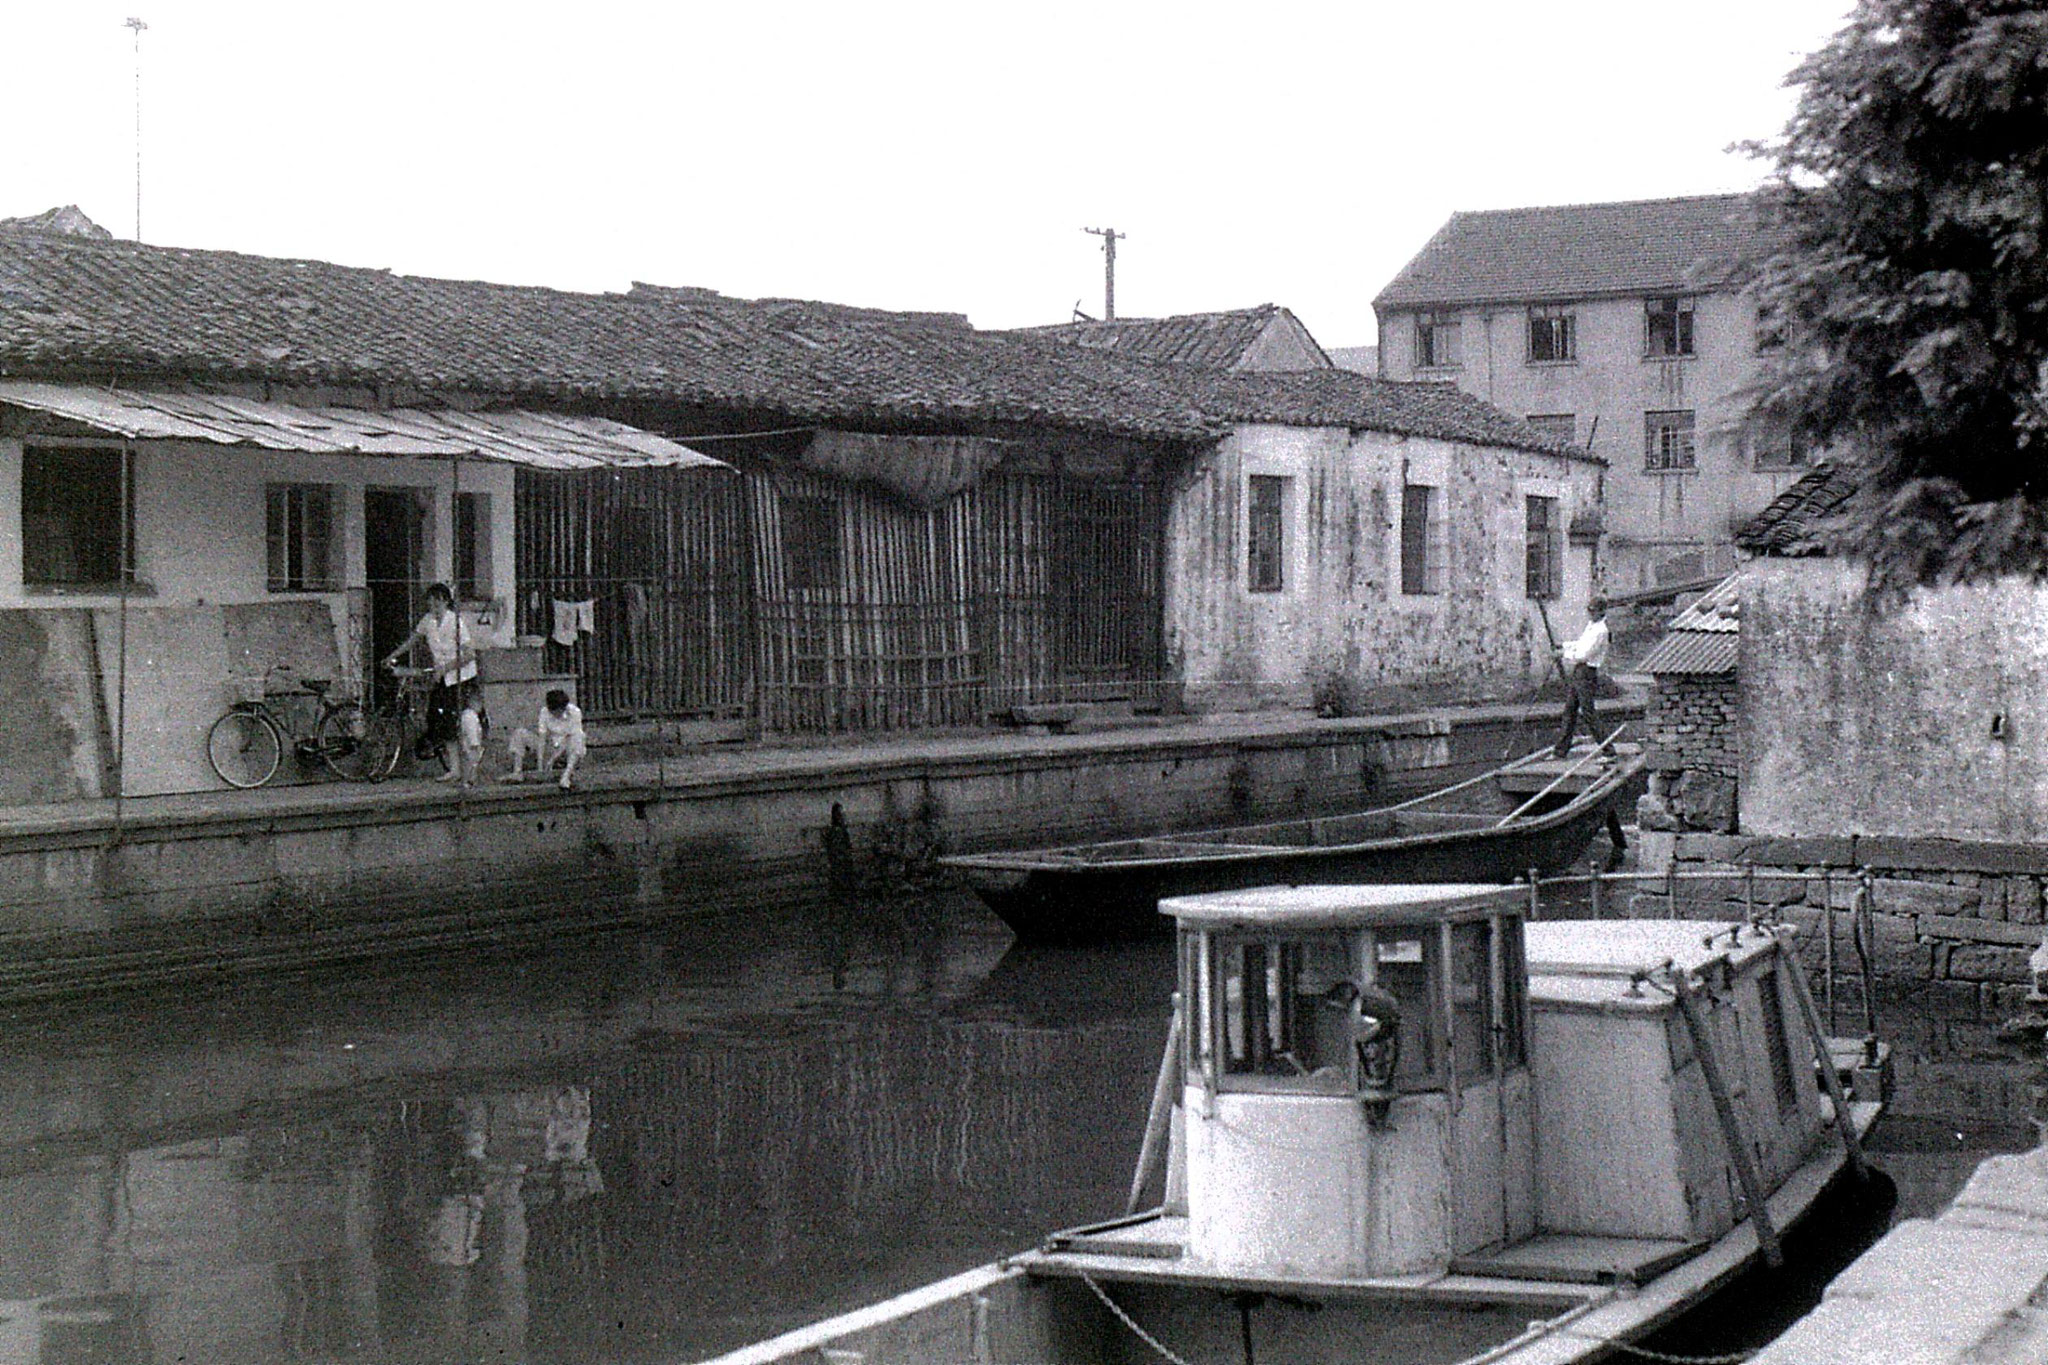 27/6/1989: 20: Shaoxing, house with wooden slats on canal